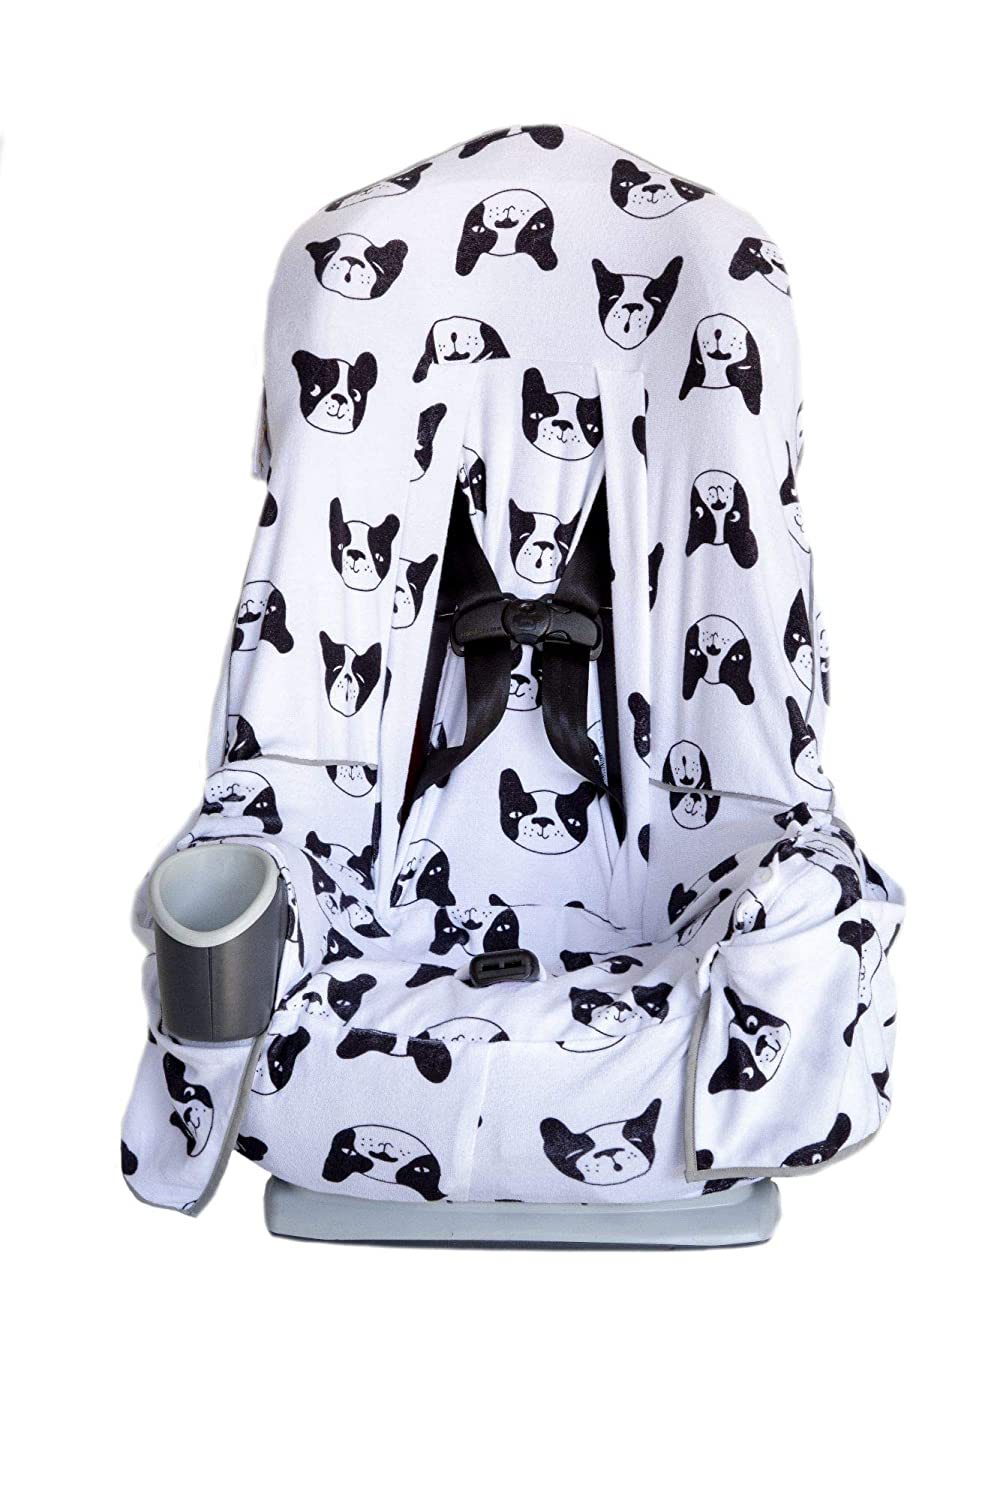 Niko Easy Wash Children's Car Seat Cover & Liner - Cotton Terry Black/White Dog Pattern - Universal FIT - Crash Tested - Waterproof SEAT Bottom - Mess Protection - Easy to Clean - Machine Washable